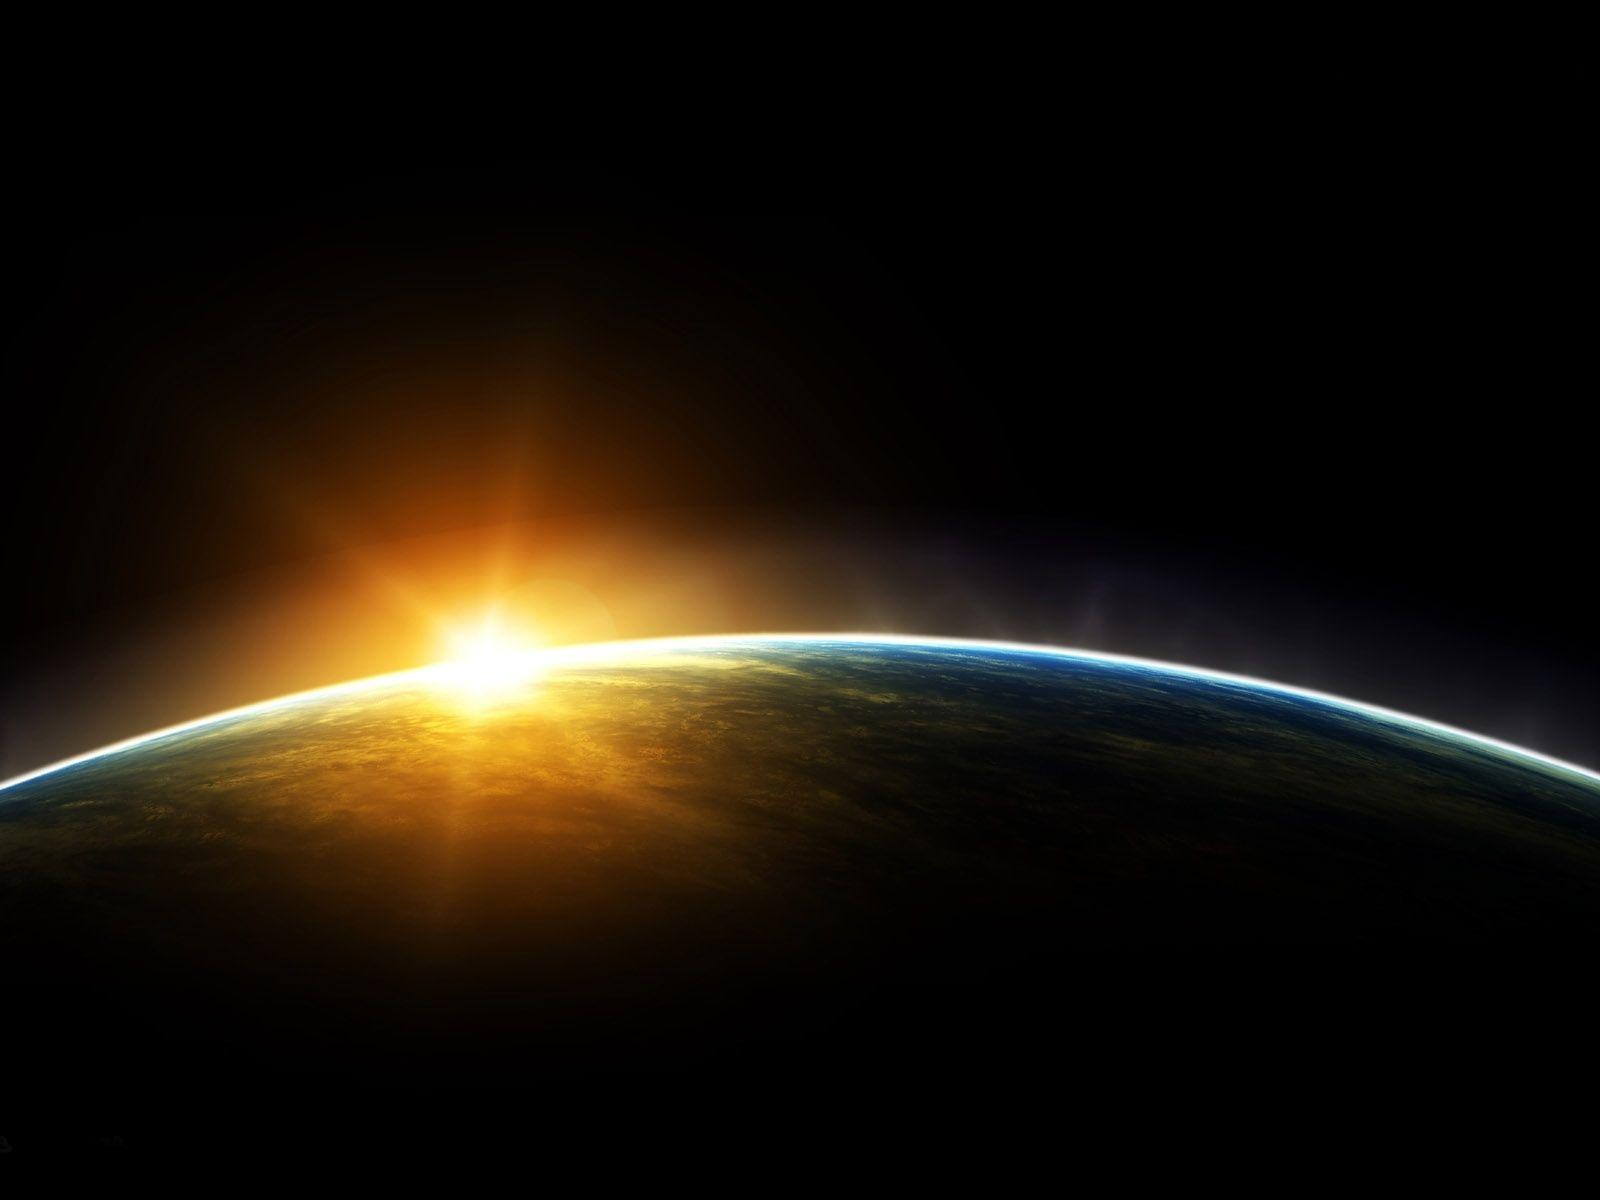 Sun And Earth Wallpapers - HD Wallpapers Inn